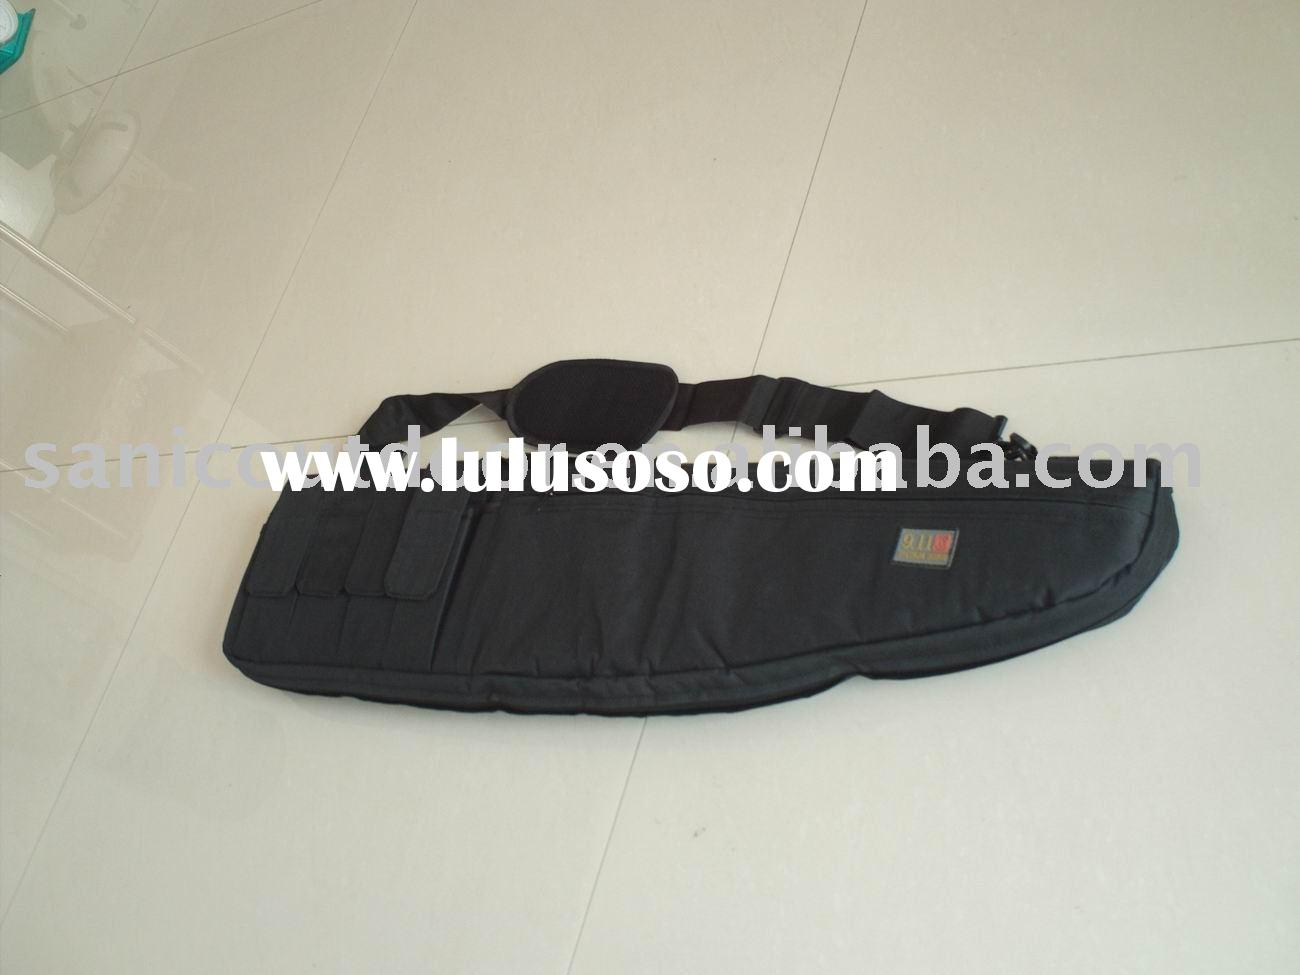 Gun Bag/Gun Case/Gun accessories